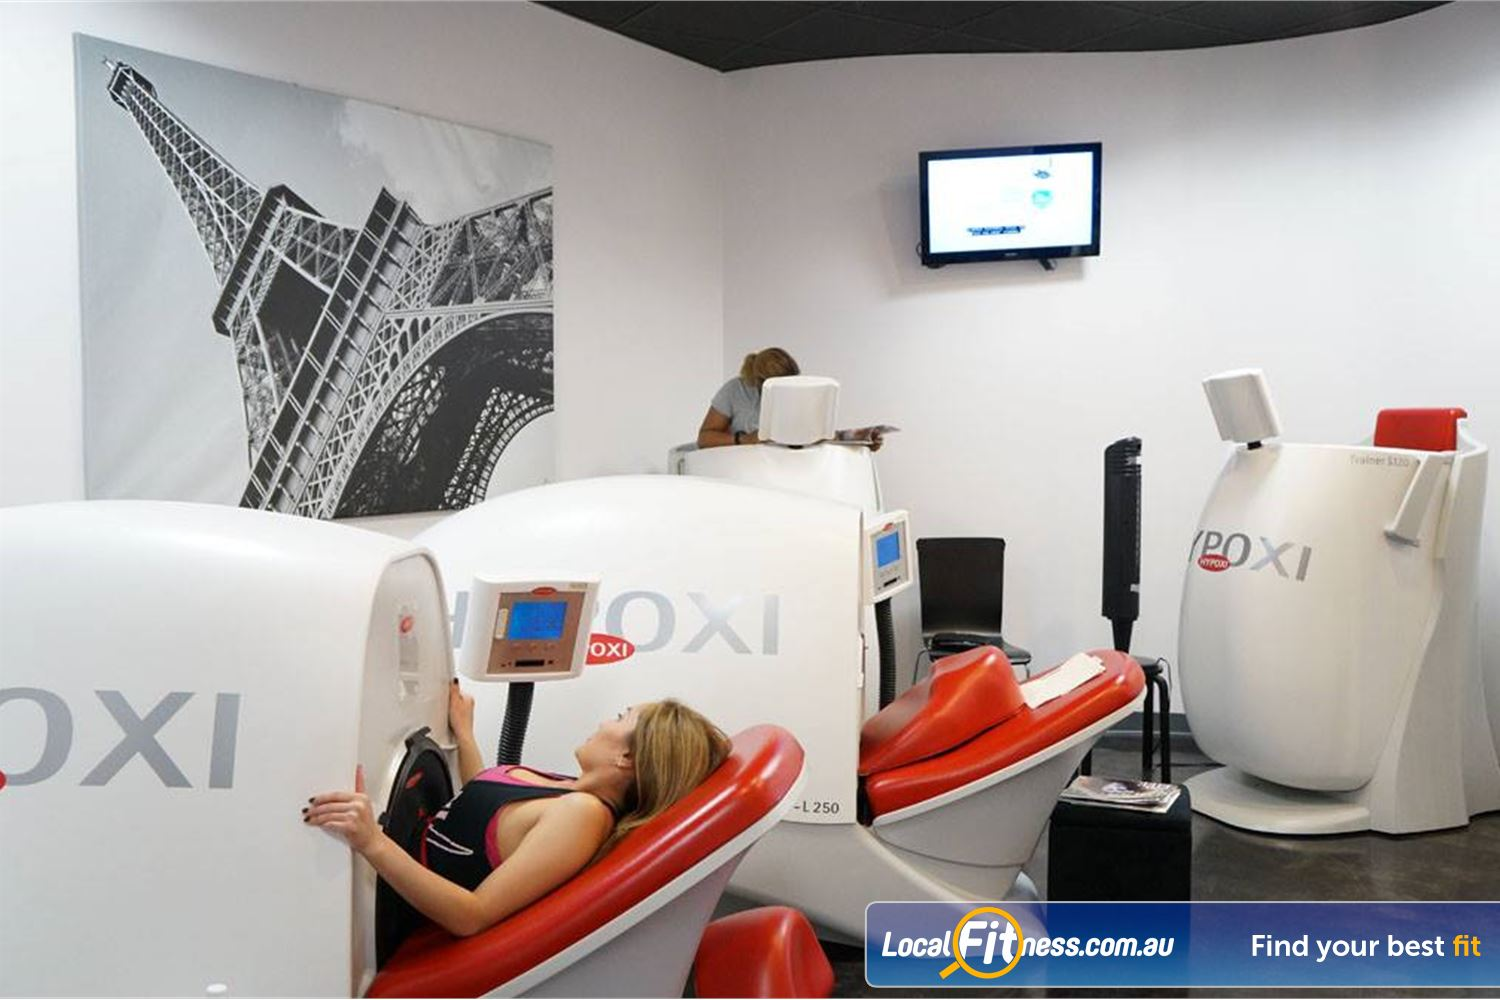 HYPOXI Weight Loss Madeley The average client loses 26cm in the first 4 weeks at HYPOXI Kingsway.